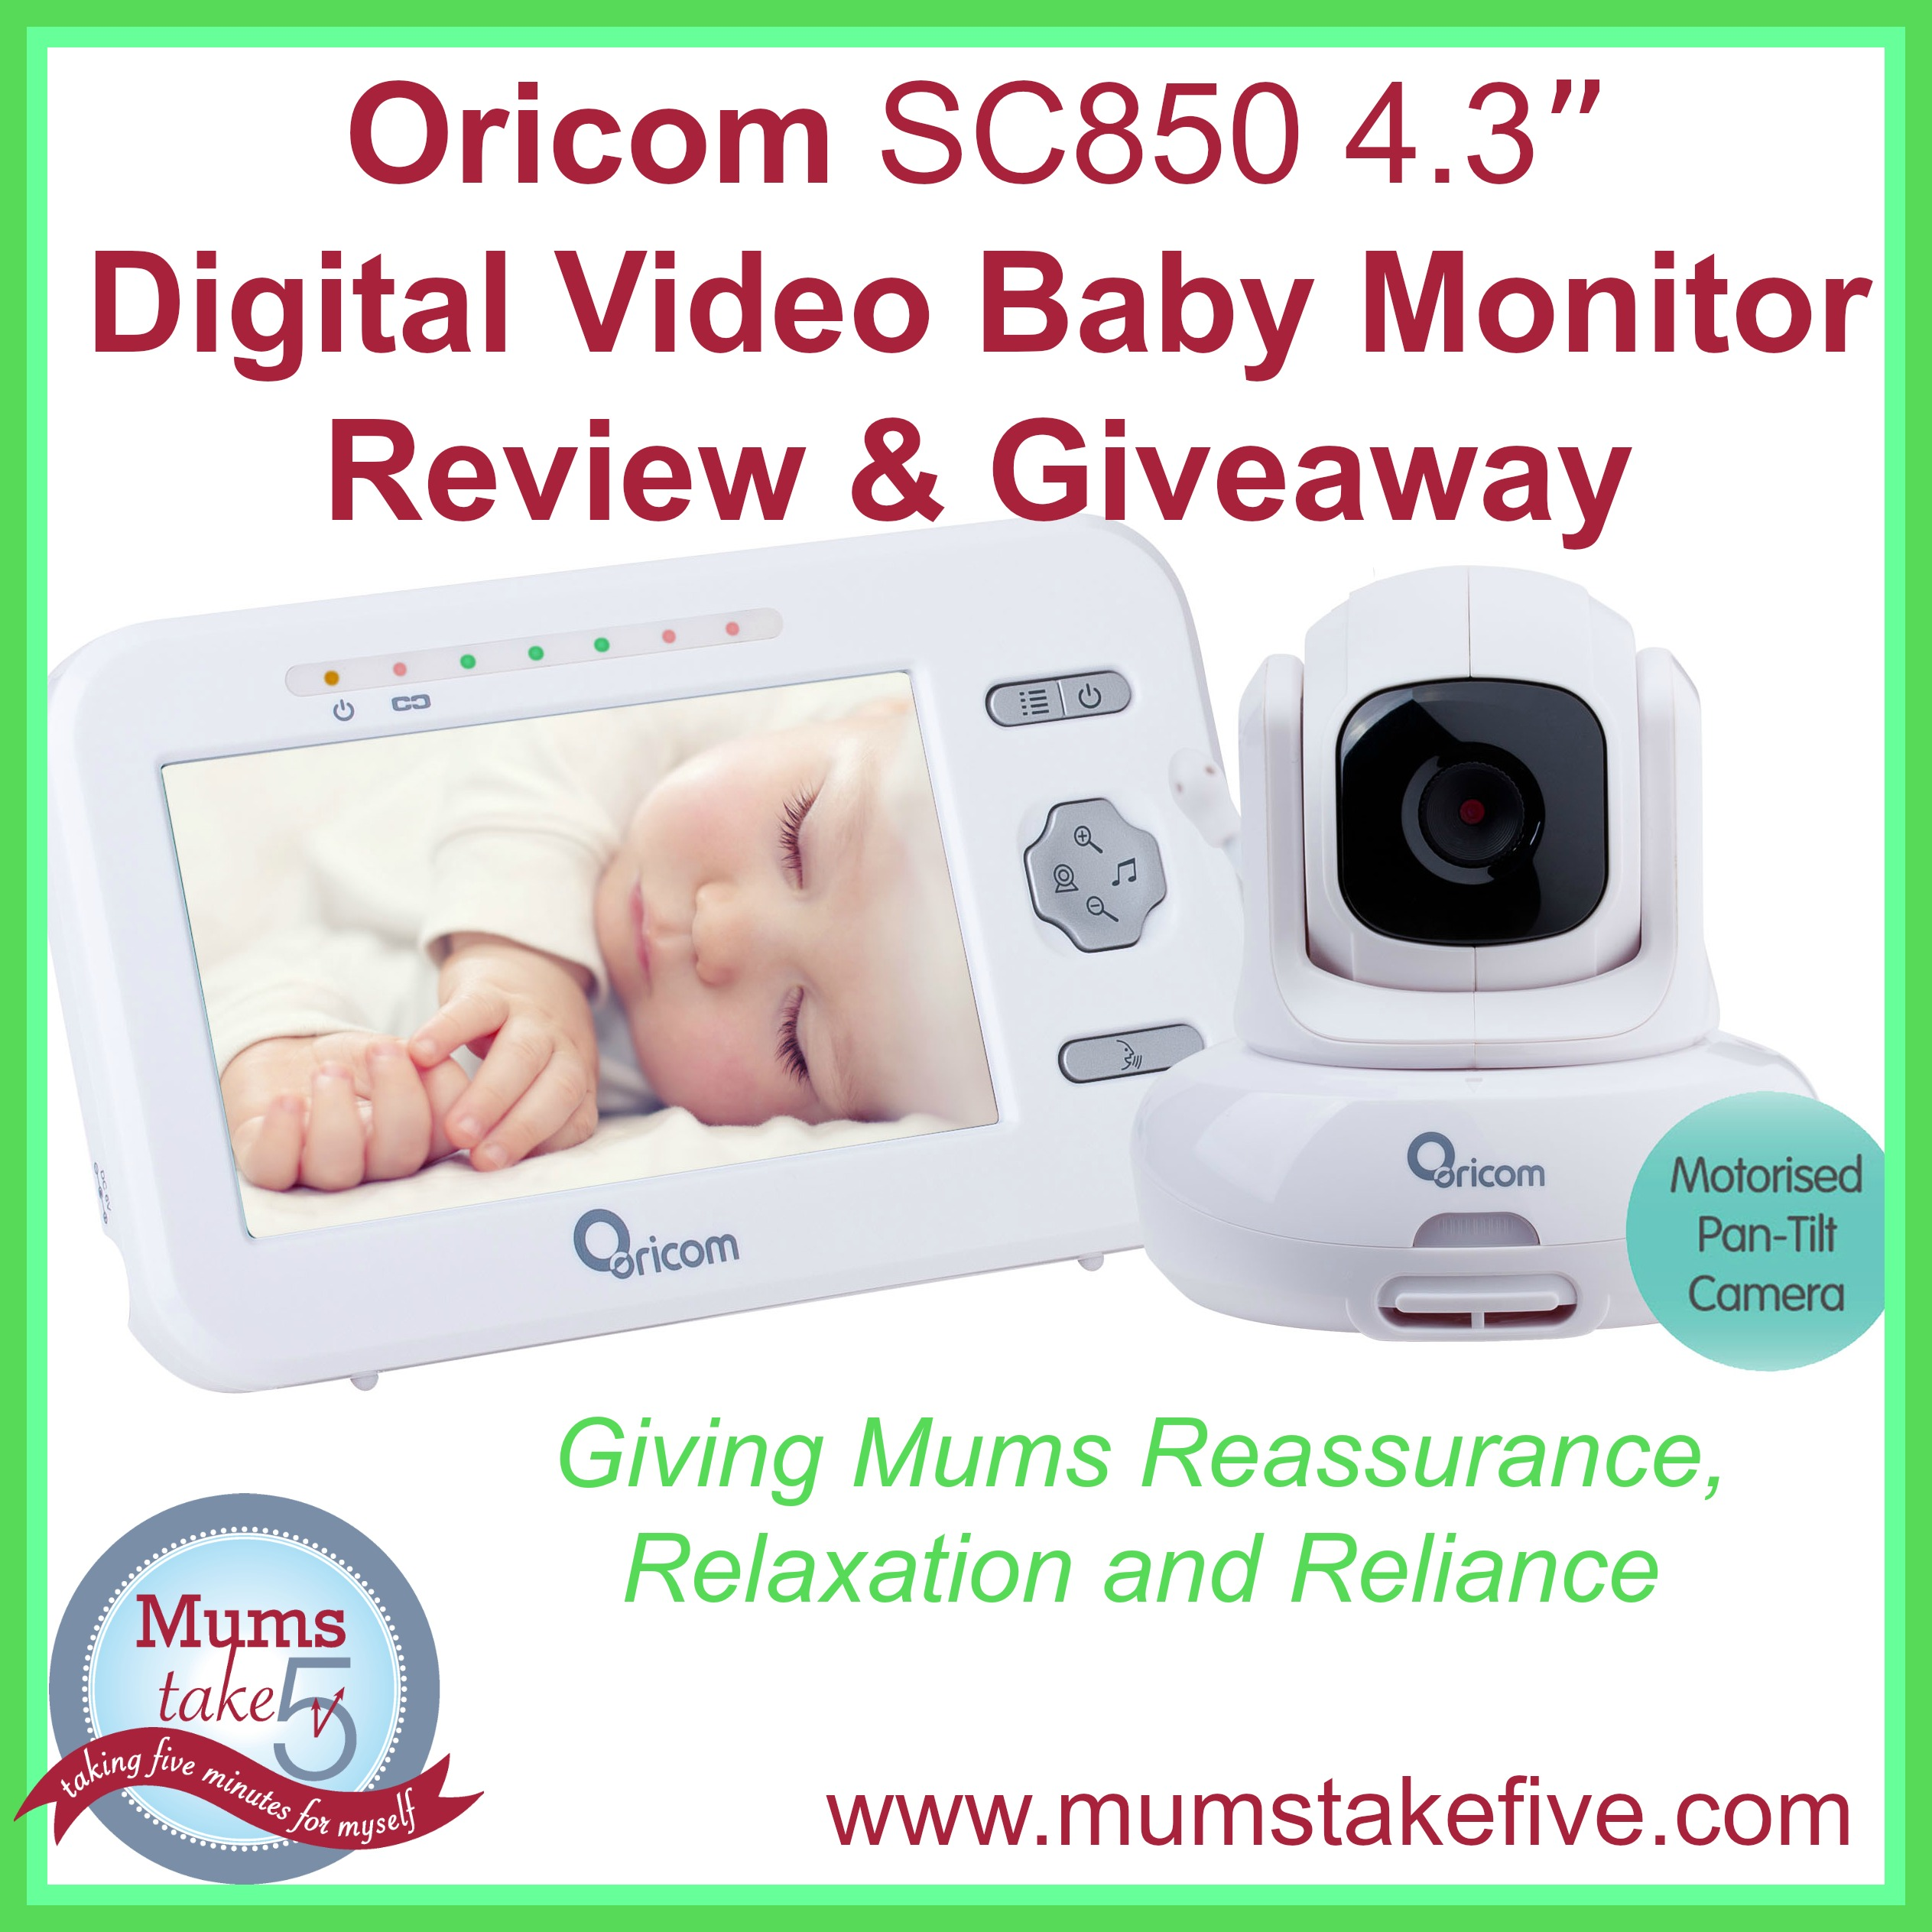 Oricom Baby Monitor Review and GIveaway